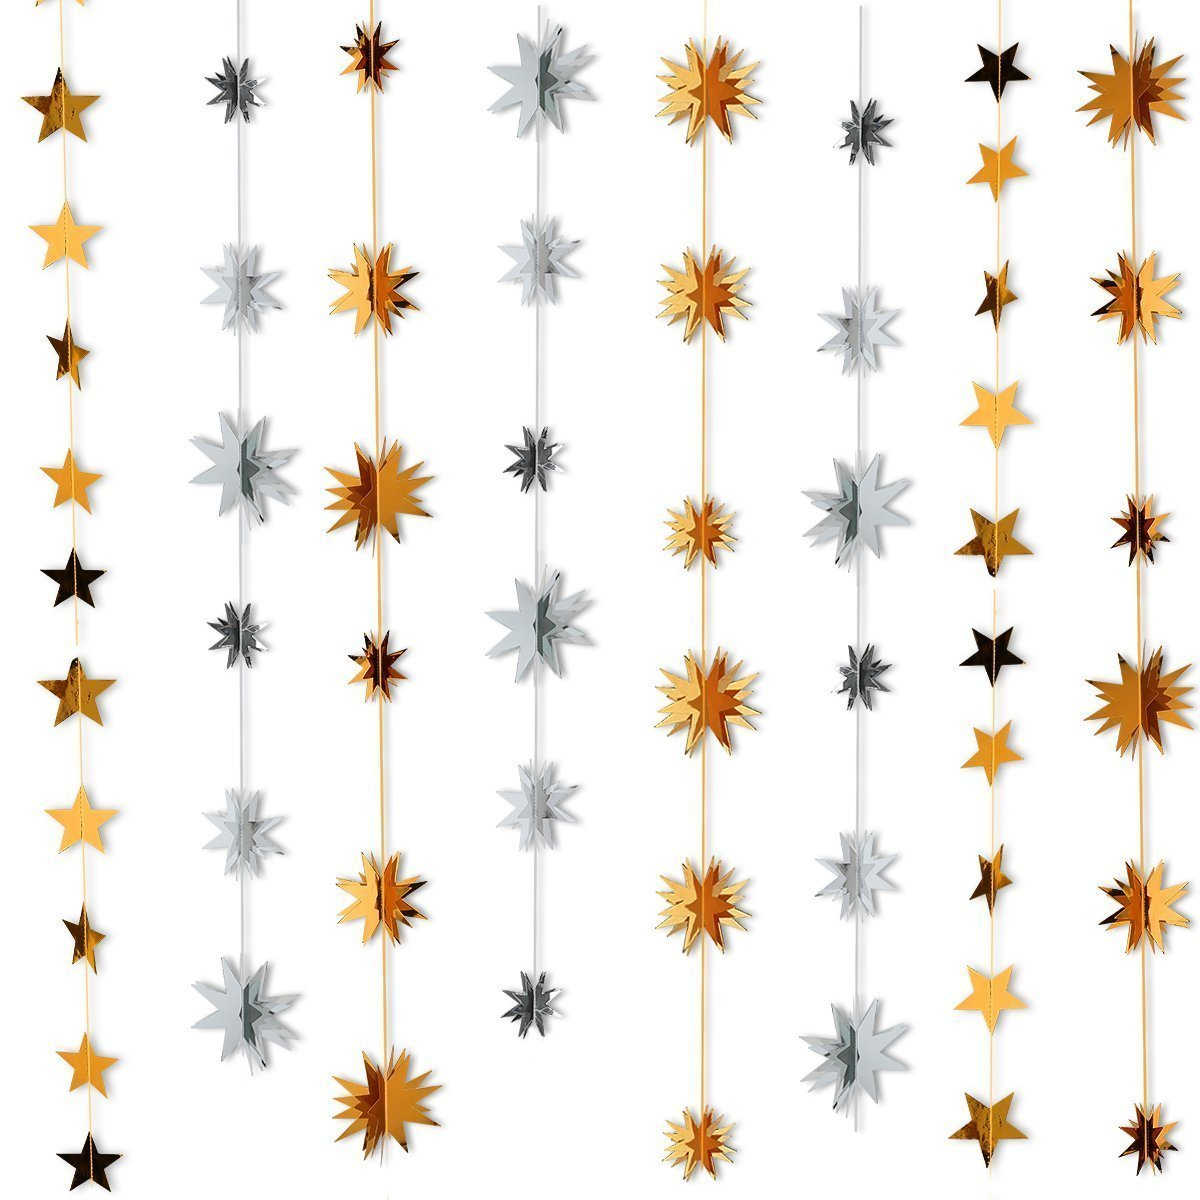 2Pcs Gold & Silver Hanging 3D Twinkle Star Garland and 27Pcs Gold Twinkle star Garland Flags,for Chrismas ,Holiday,NewYears,Wedding,Birthday,Home Decorations